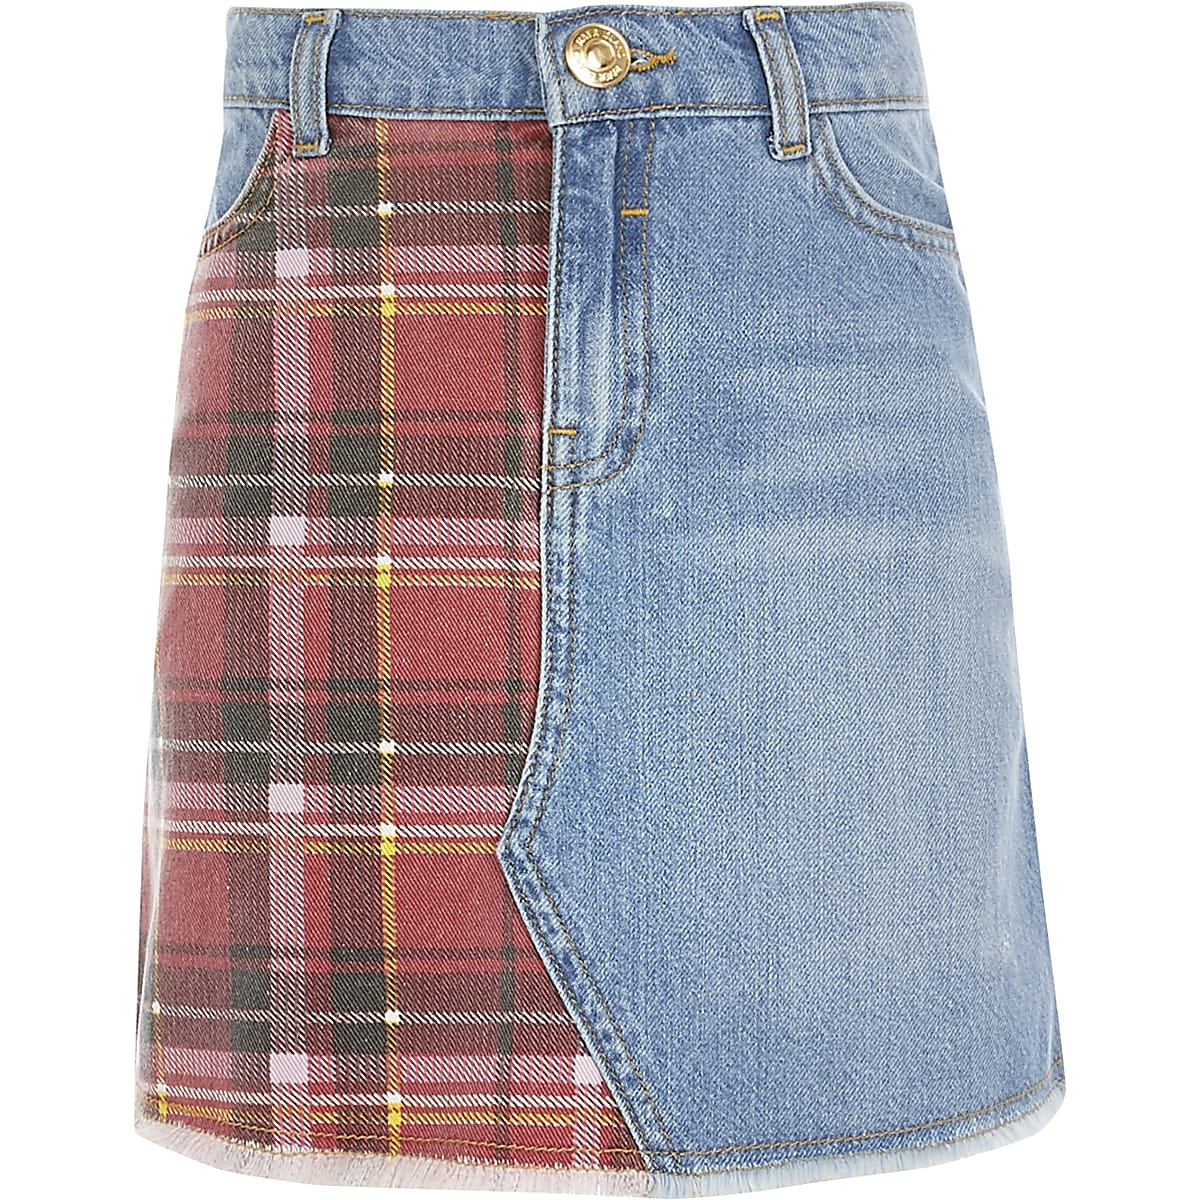 Girls blue tartan check denim skirt